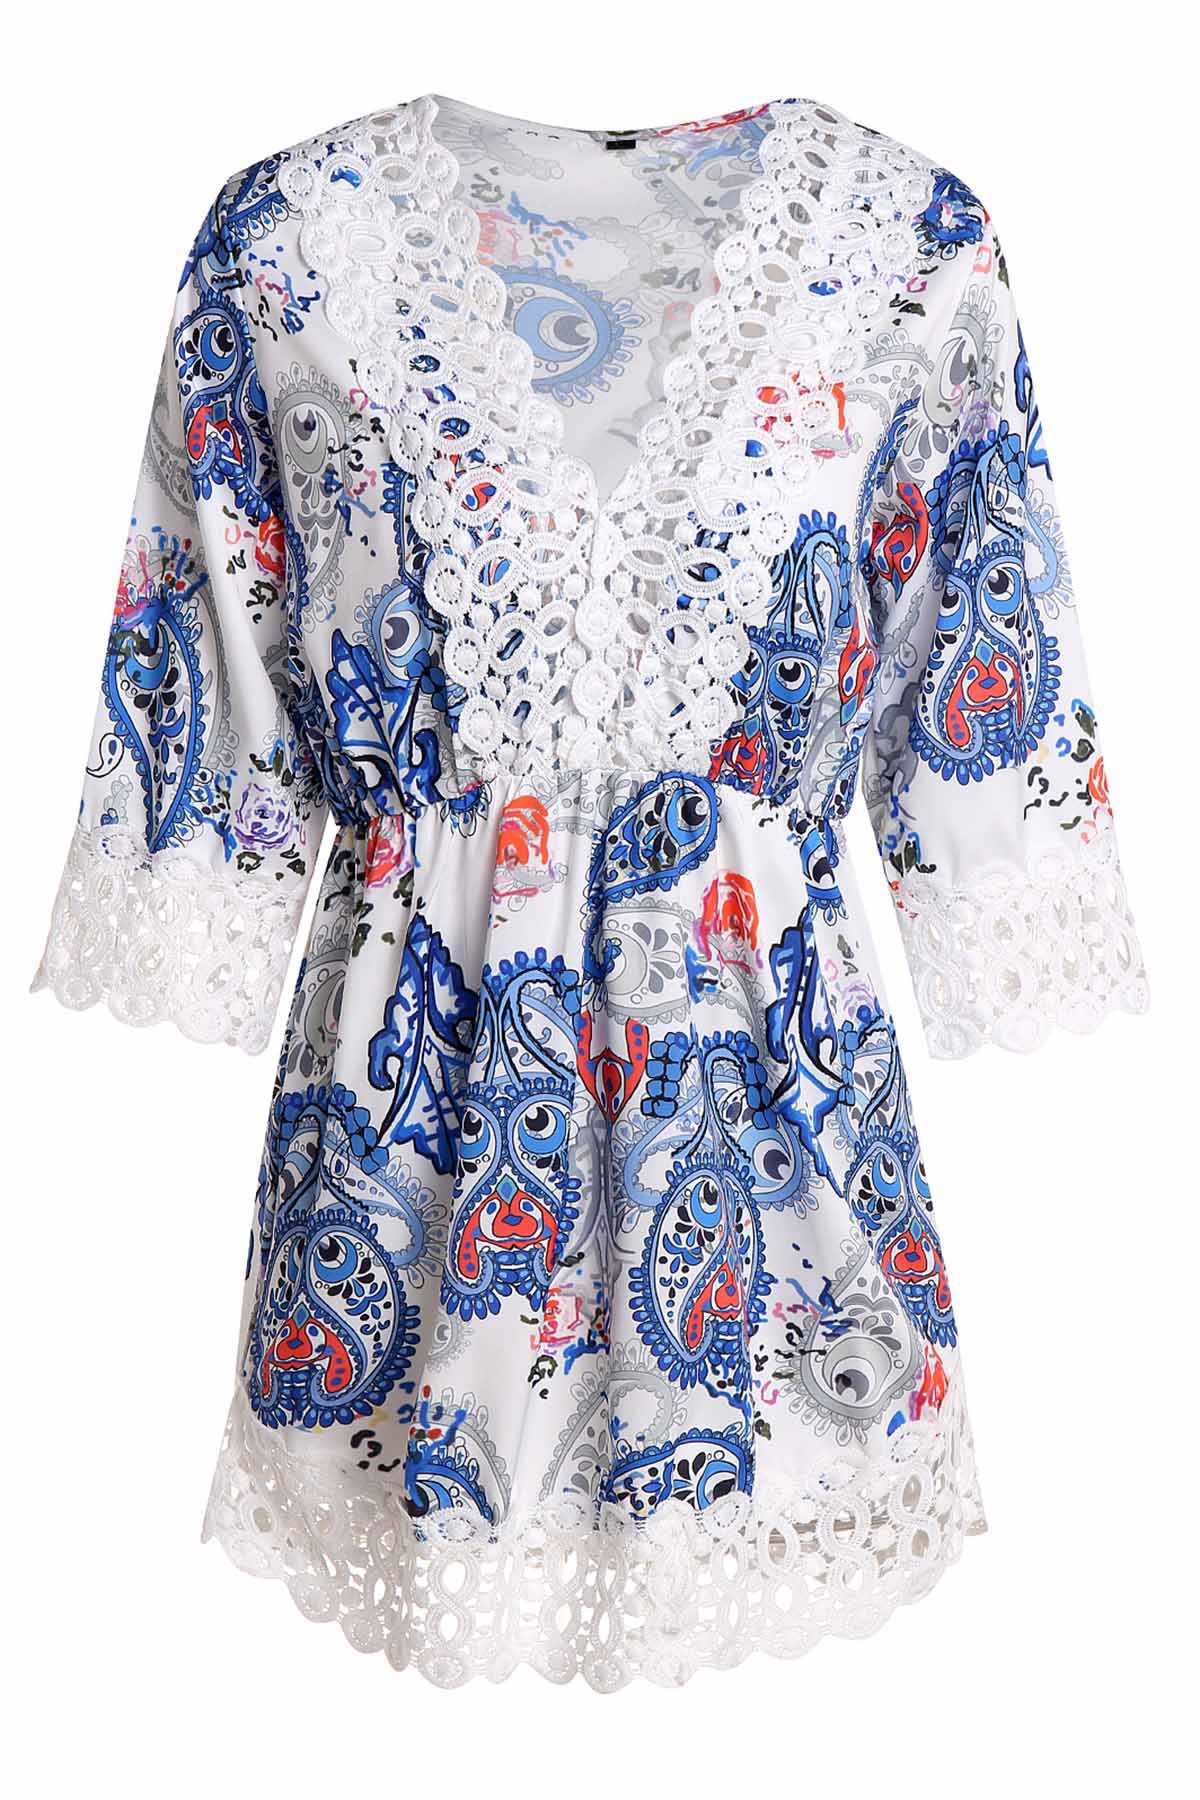 Sexy Women's V-Neck Lace Embellished Paisley Dress - BLUE L